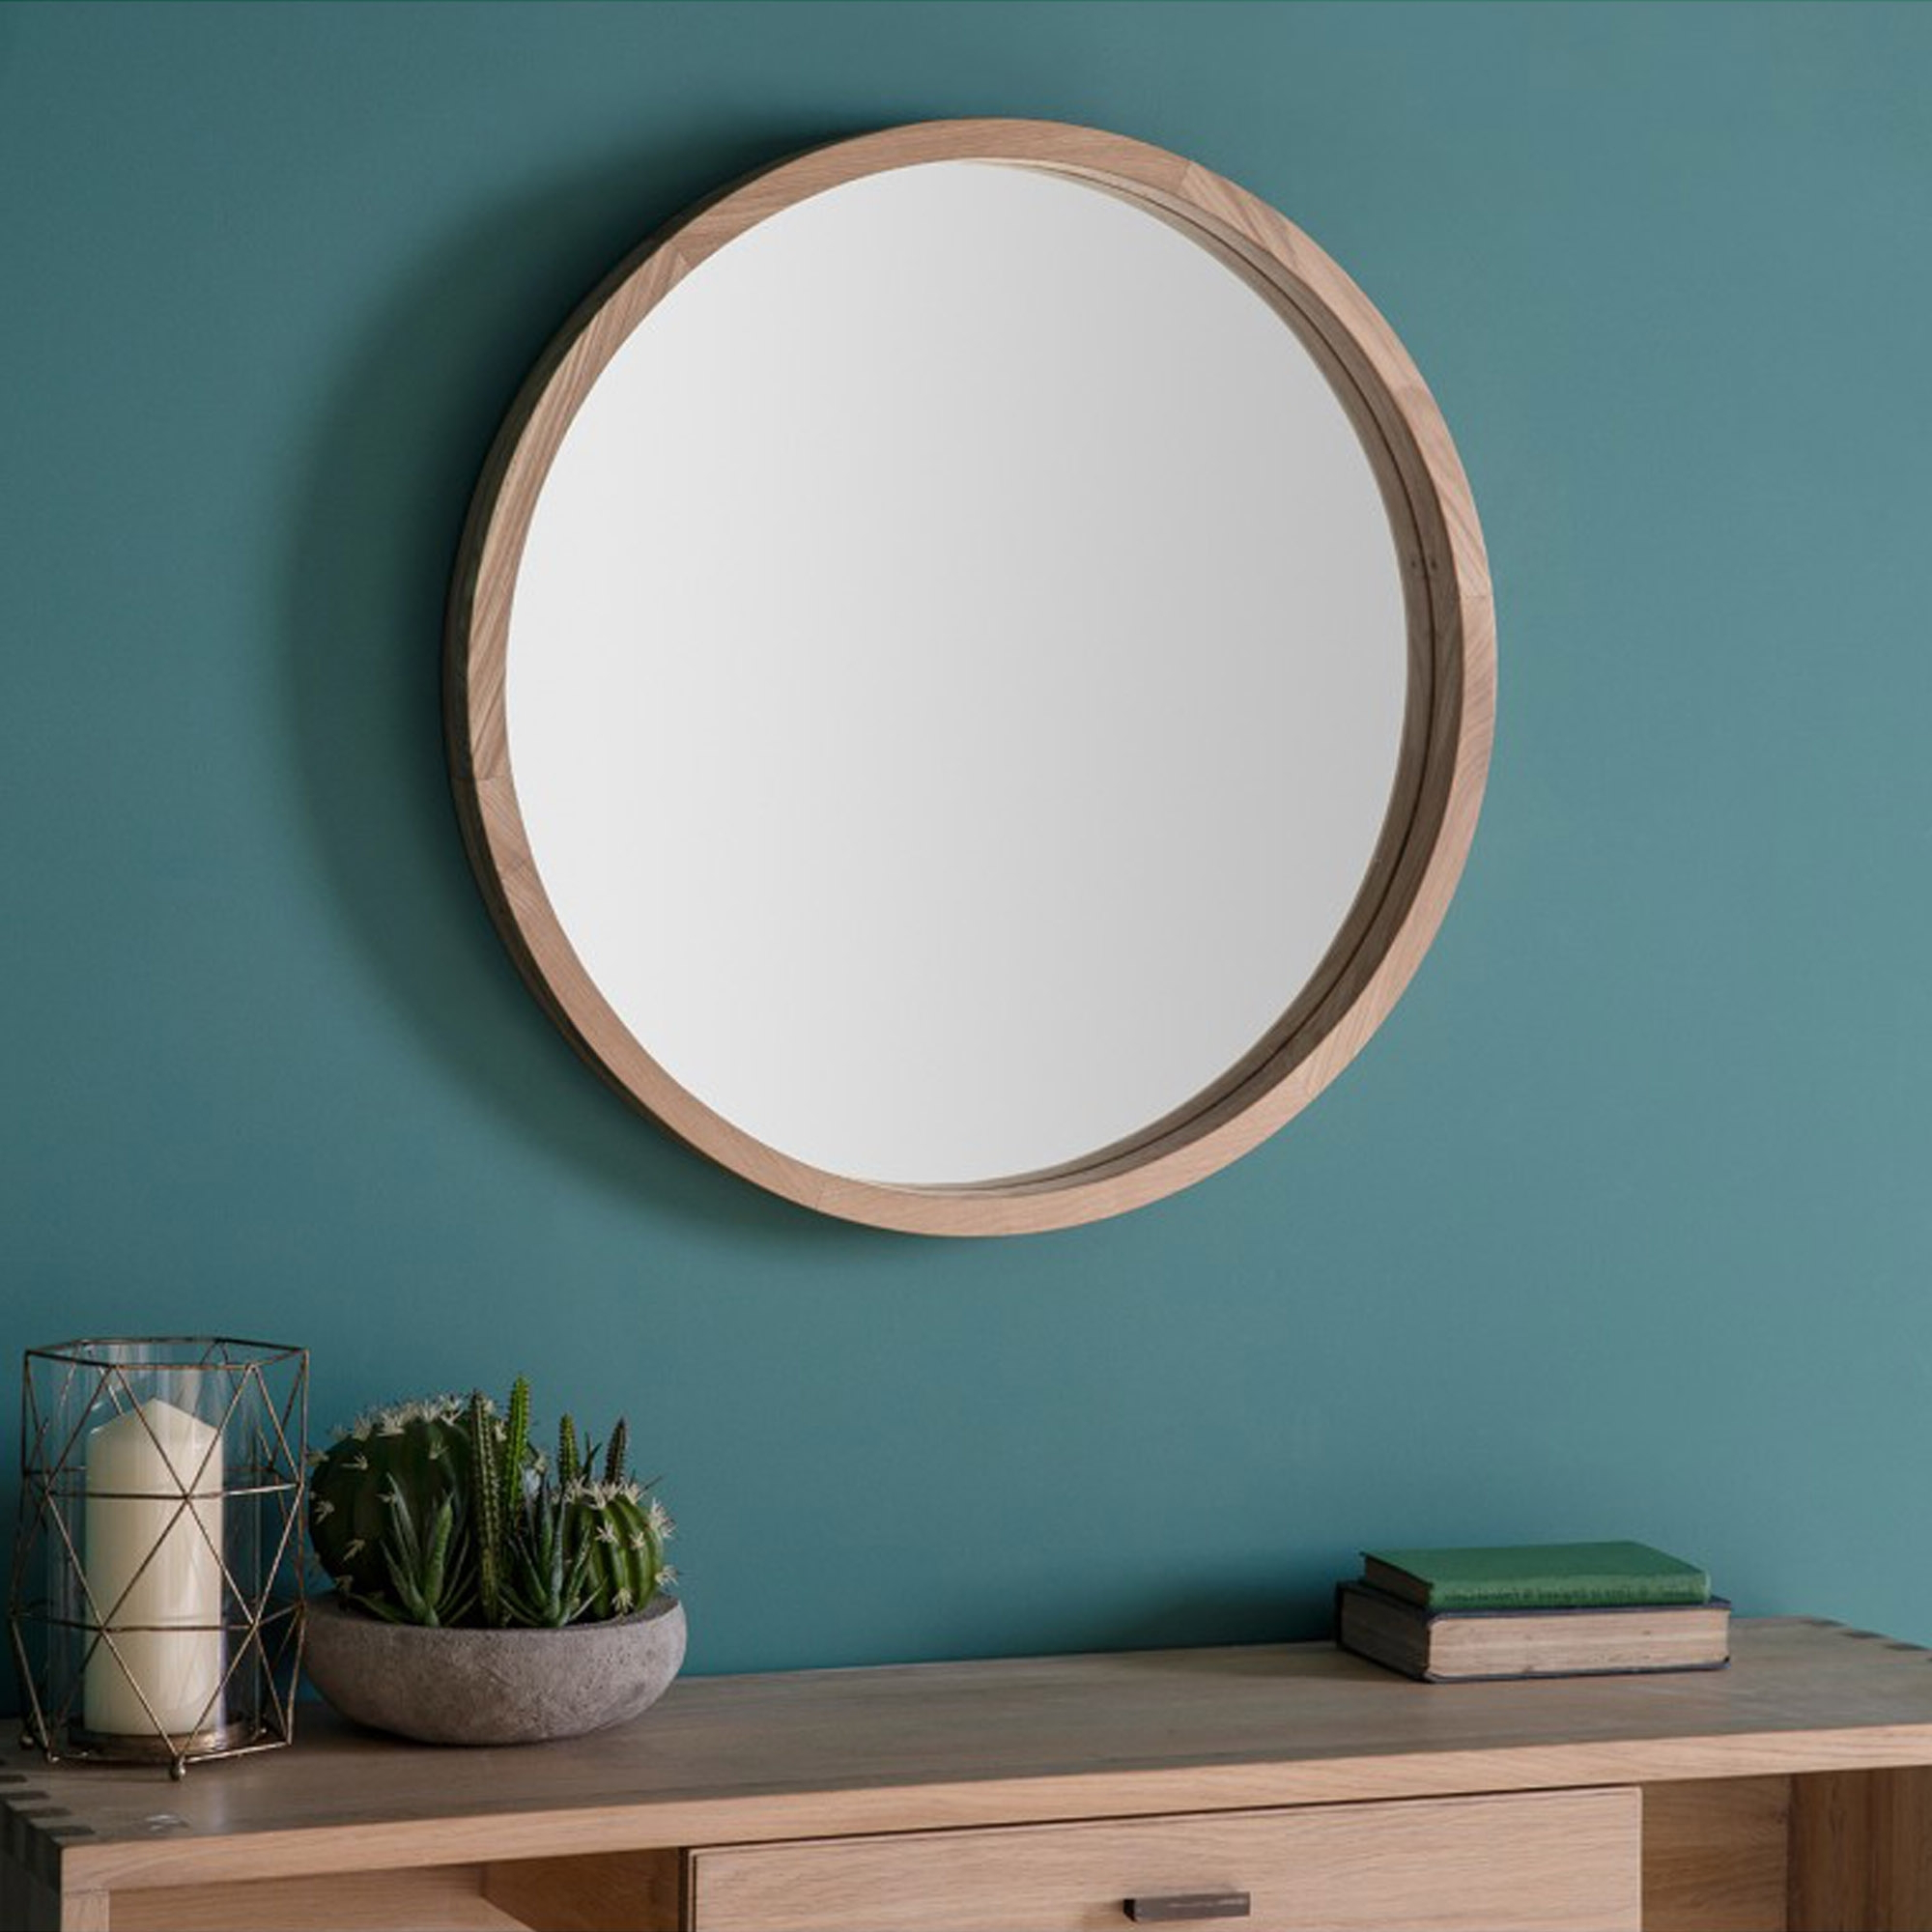 Preferred Round Wall Mirrors In Bowman Small Round Wall Mirror (View 5 of 20)